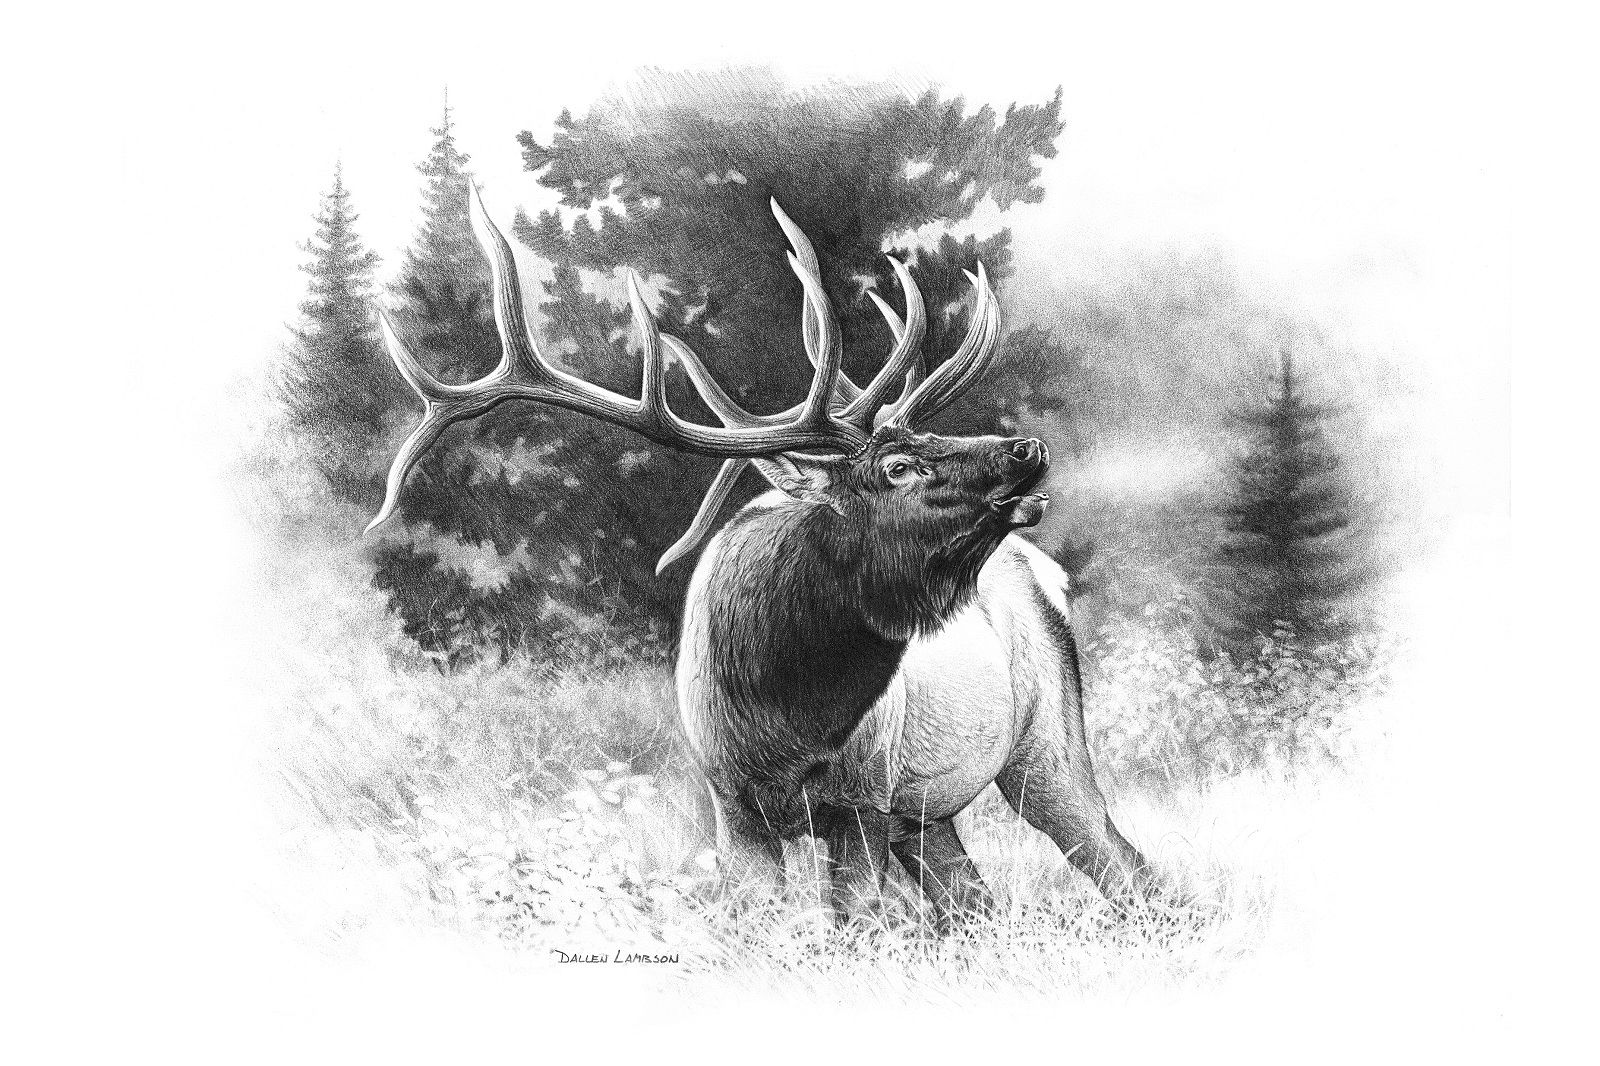 Elk Antler Drawing - Google Search